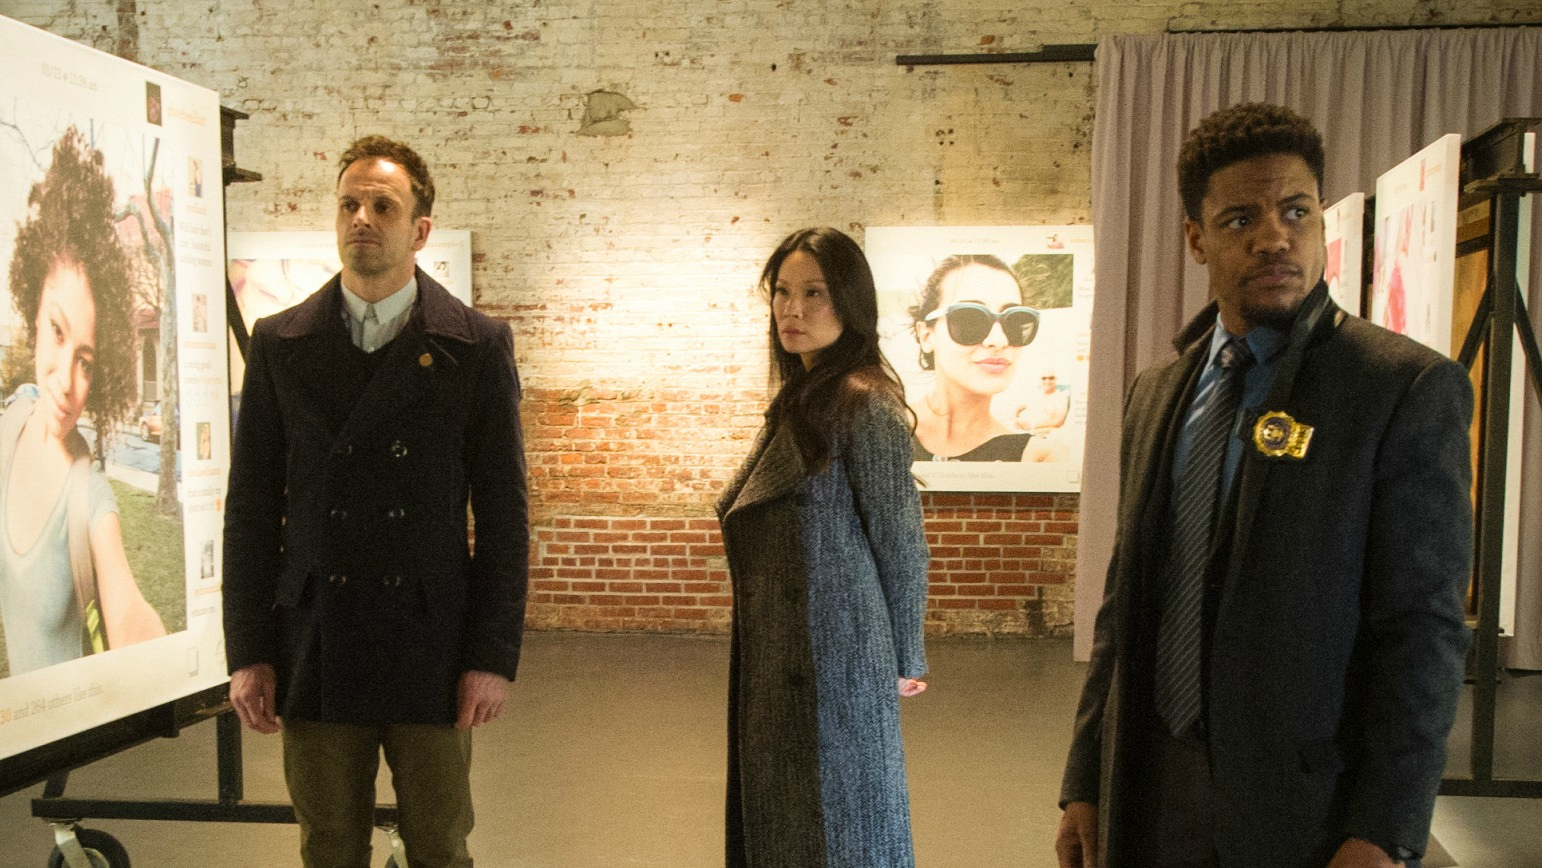 Jonny Lee Miller as Sherlock Holmes, Lucy Liu as Dr. Joan Watson, and Jon Michael Hill as Det. Marcus Bell